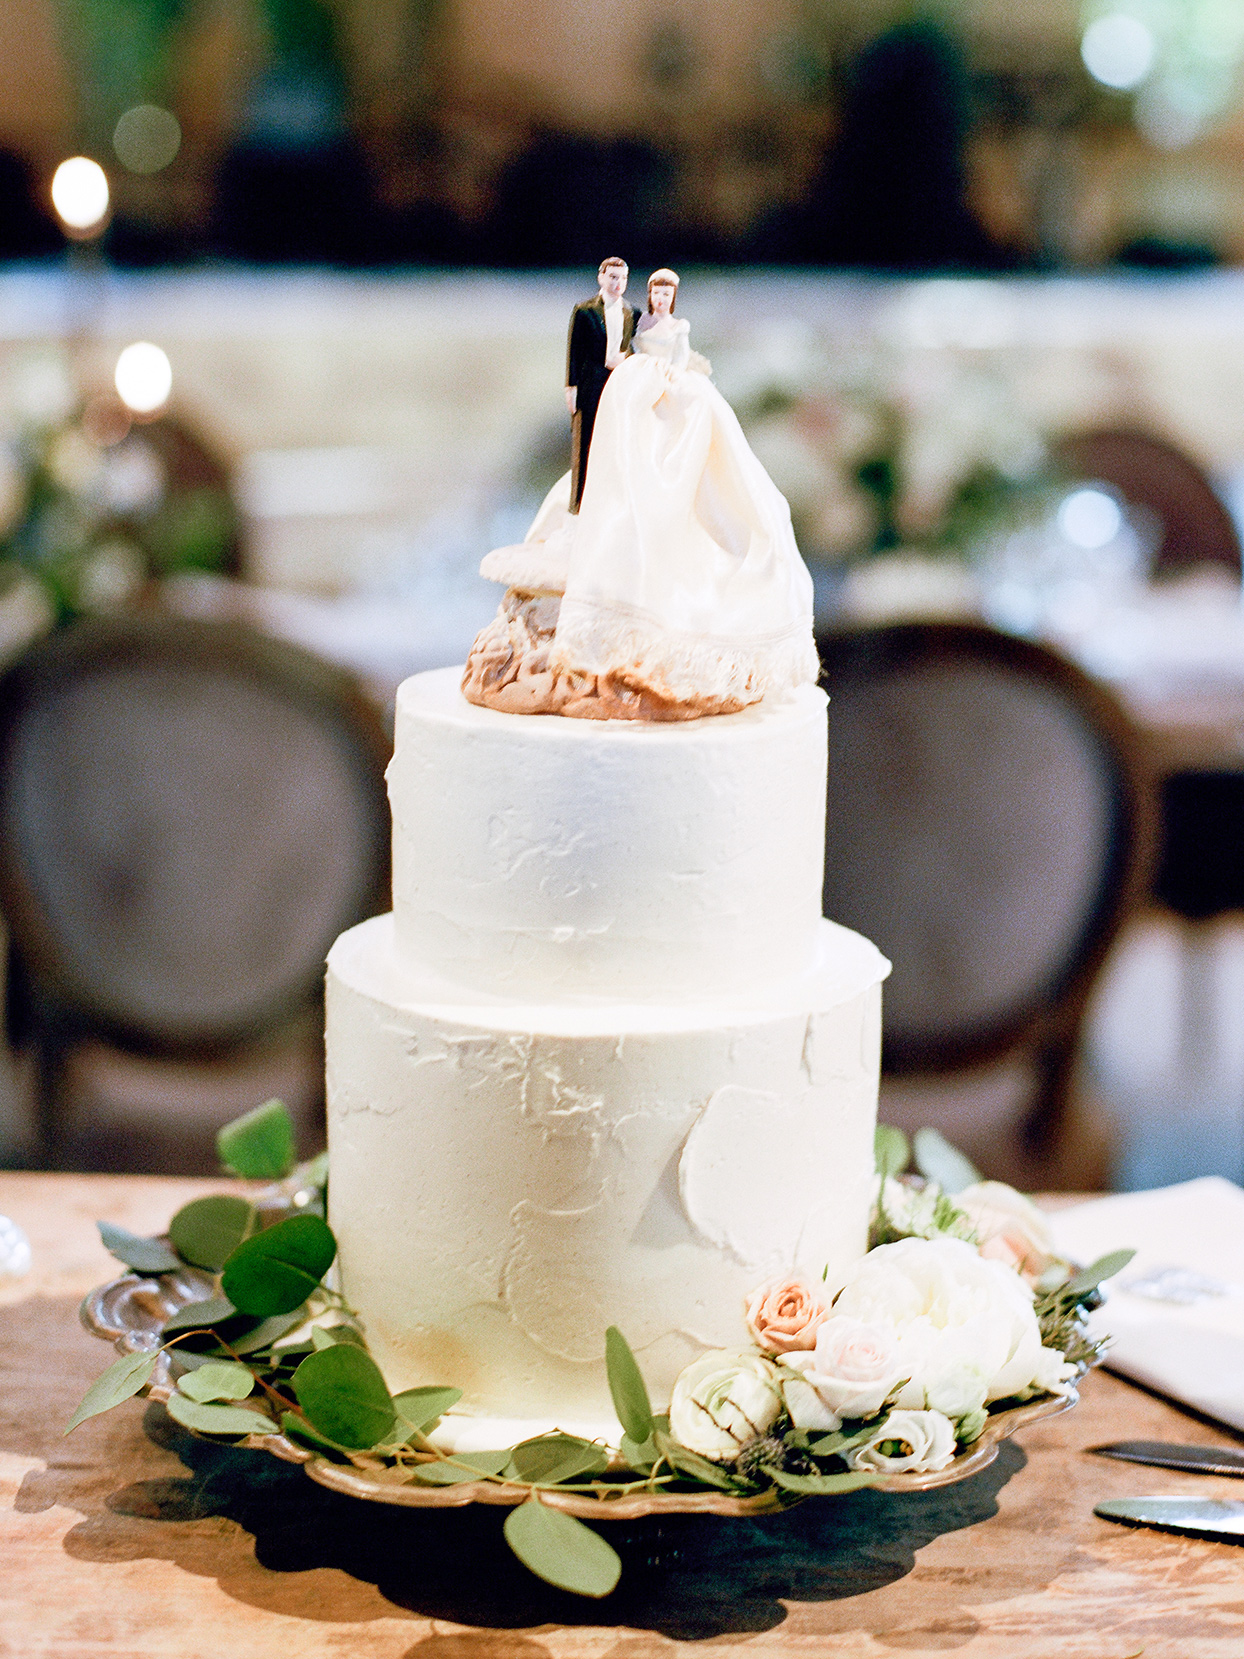 jessica aaron wedding cake with couple topper